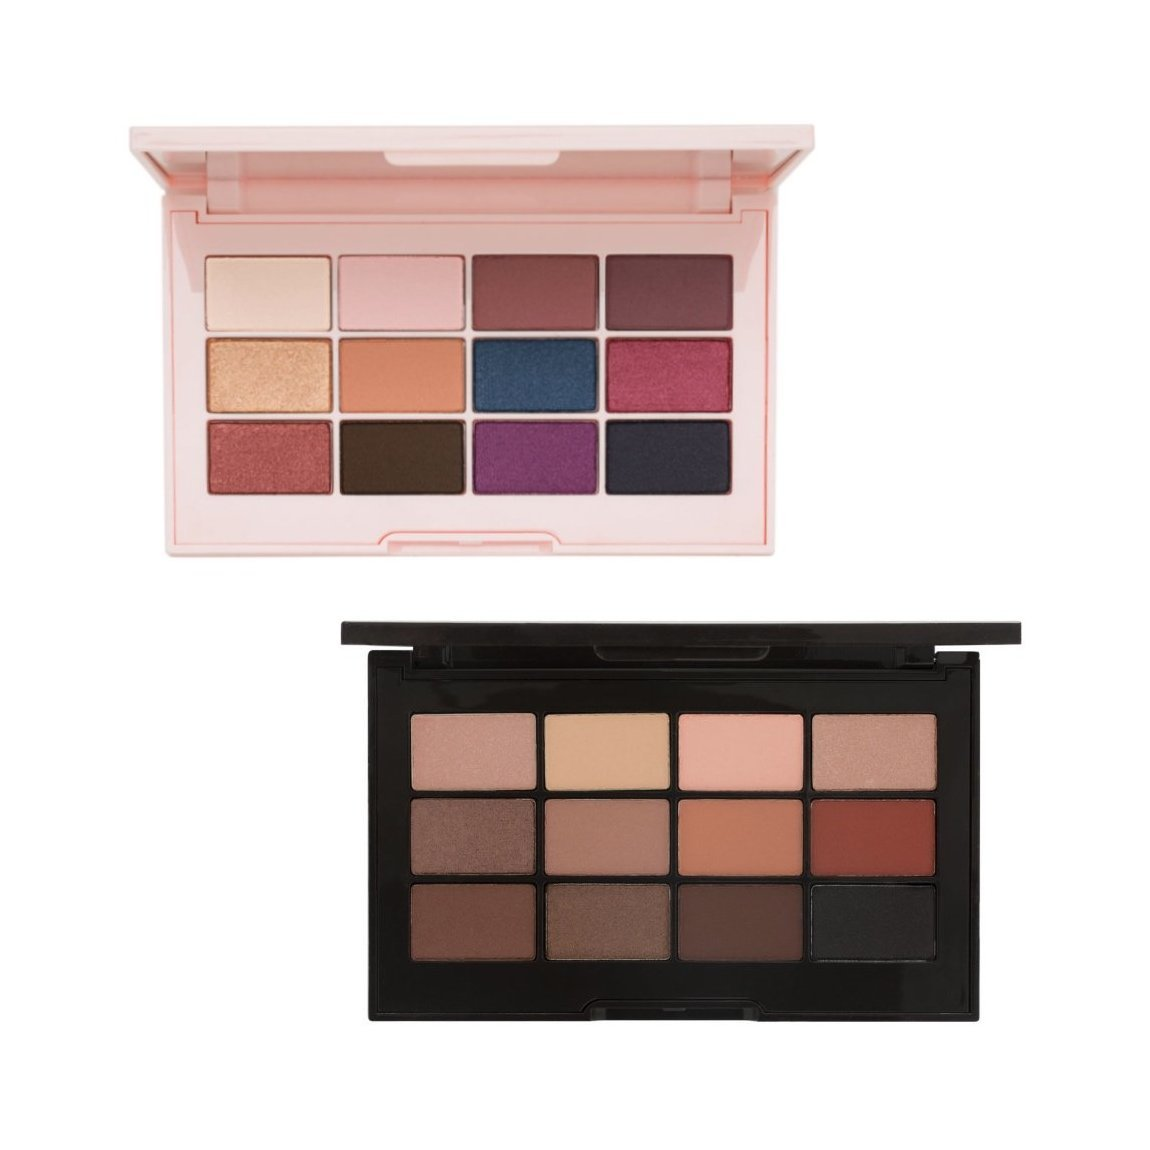 Buy the Essential Matte & Shimmer Eyeshadow Palette, get Springtime in Paris for free